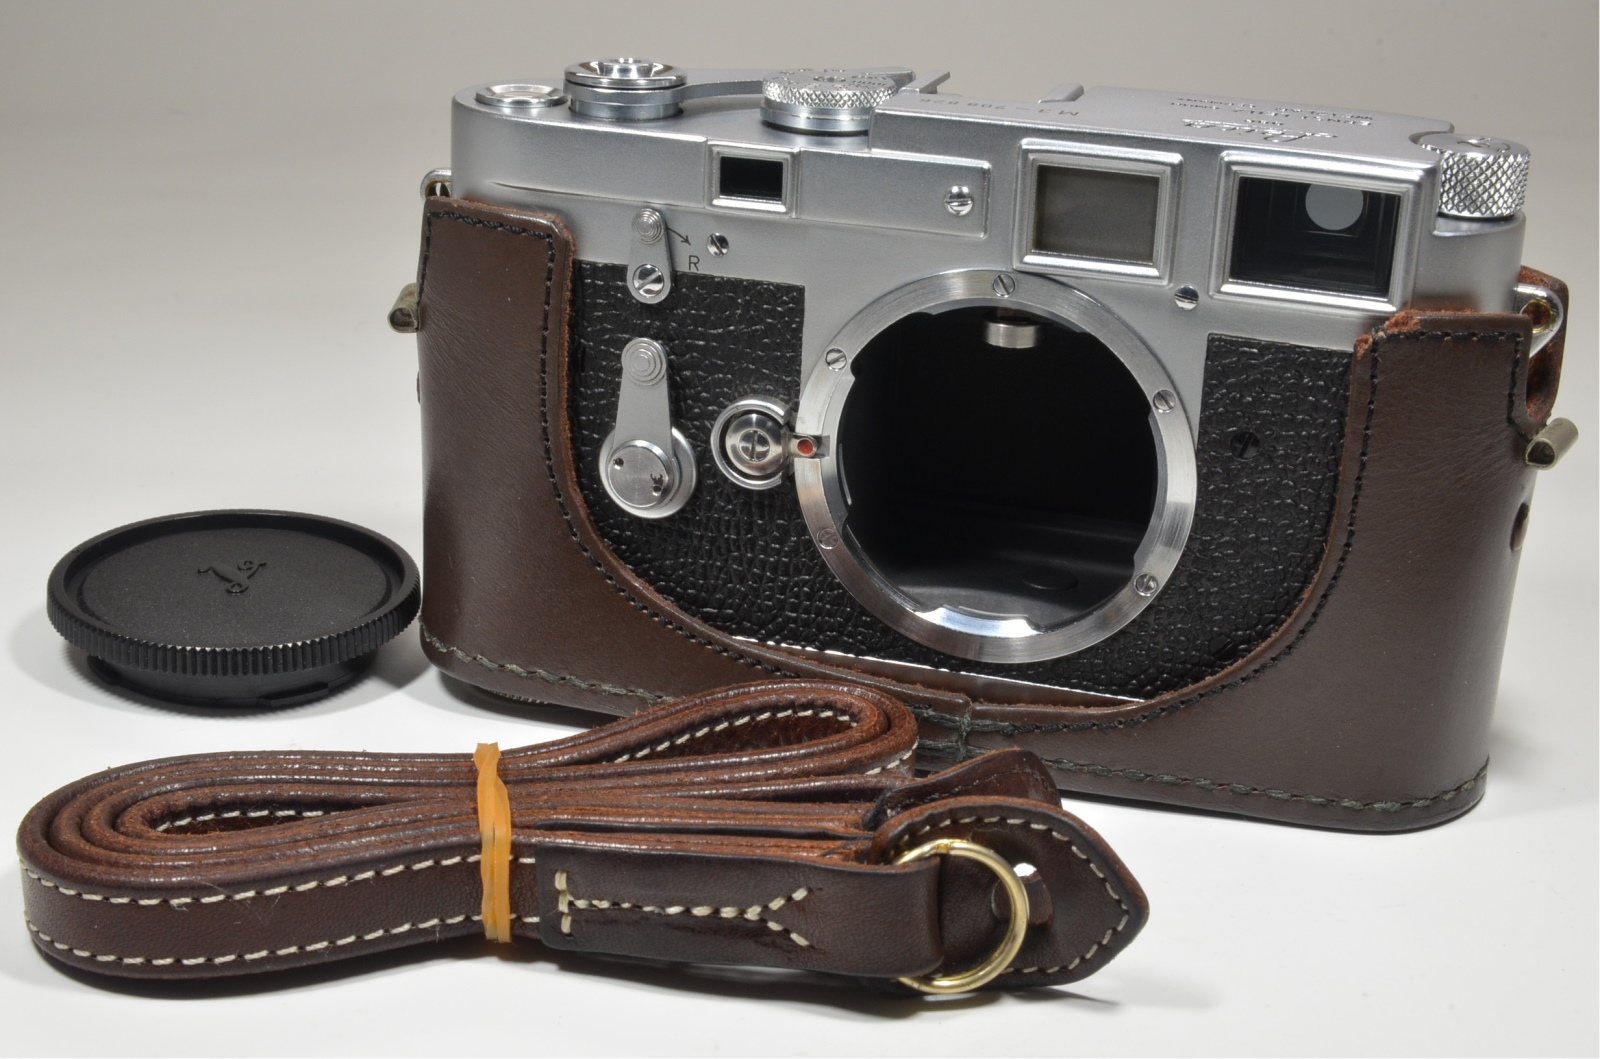 leica m3 double stroke s/n 708826 year 1954 rare with case and strap